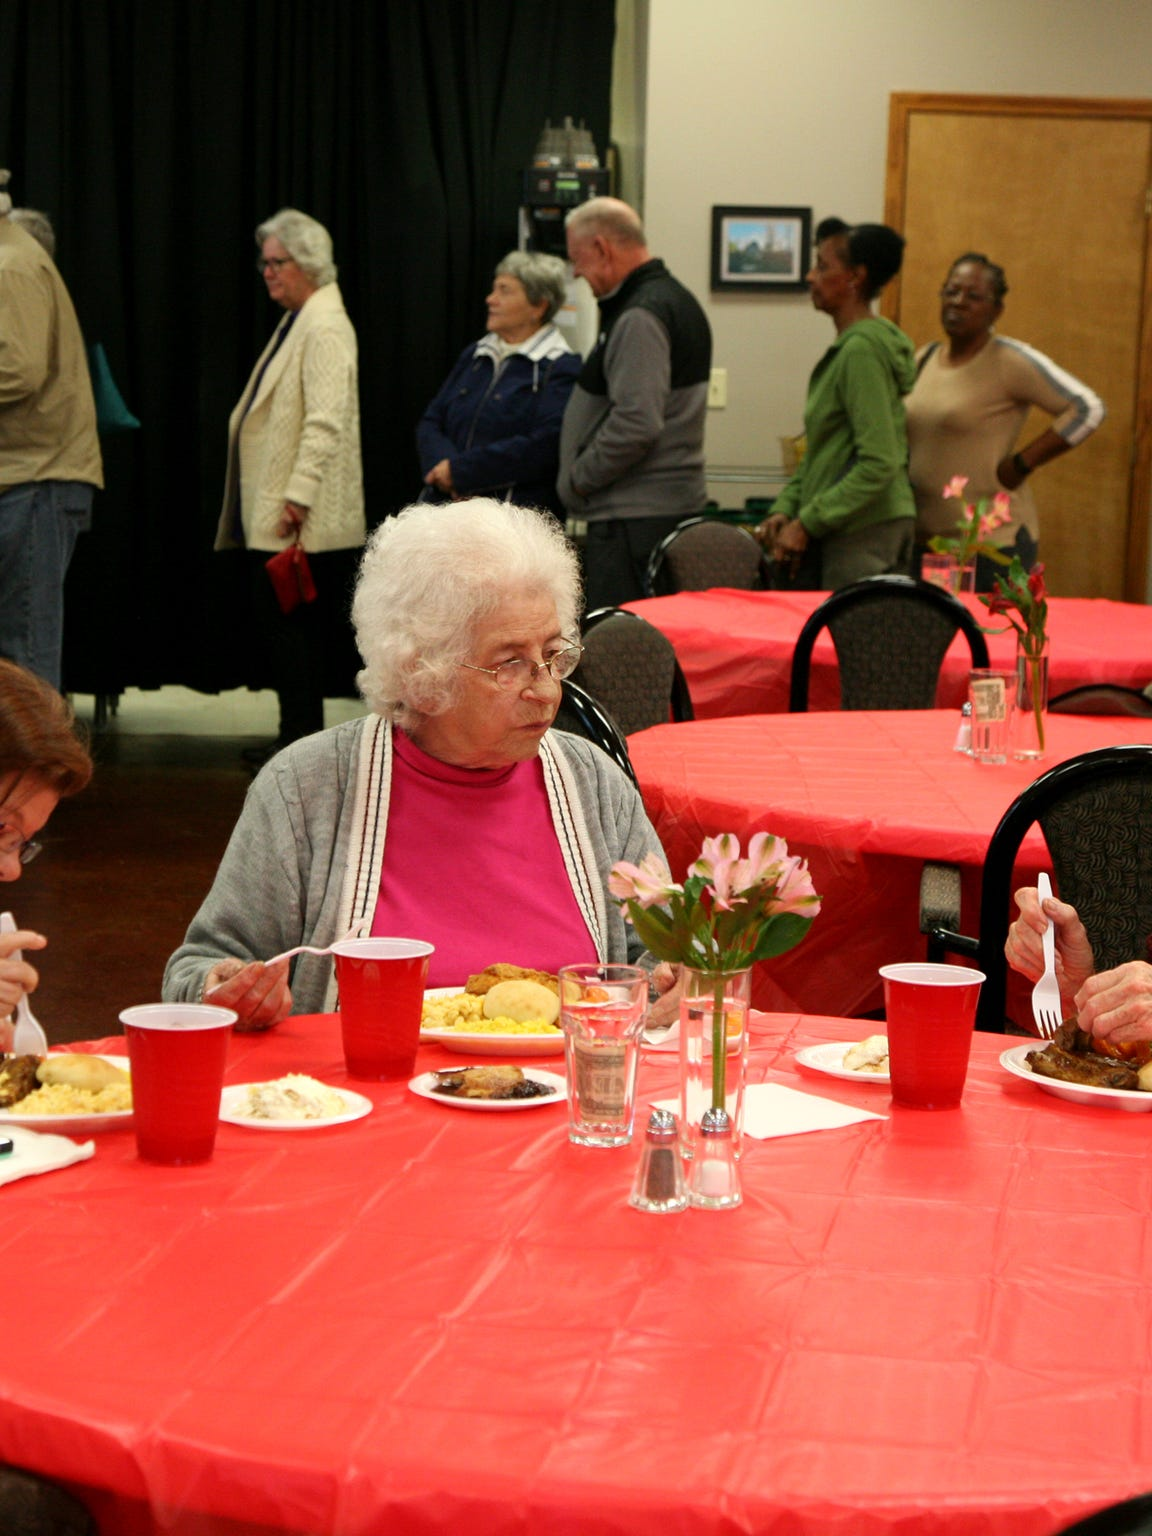 Soapstone Baptist Church in Pickens County has a monthly